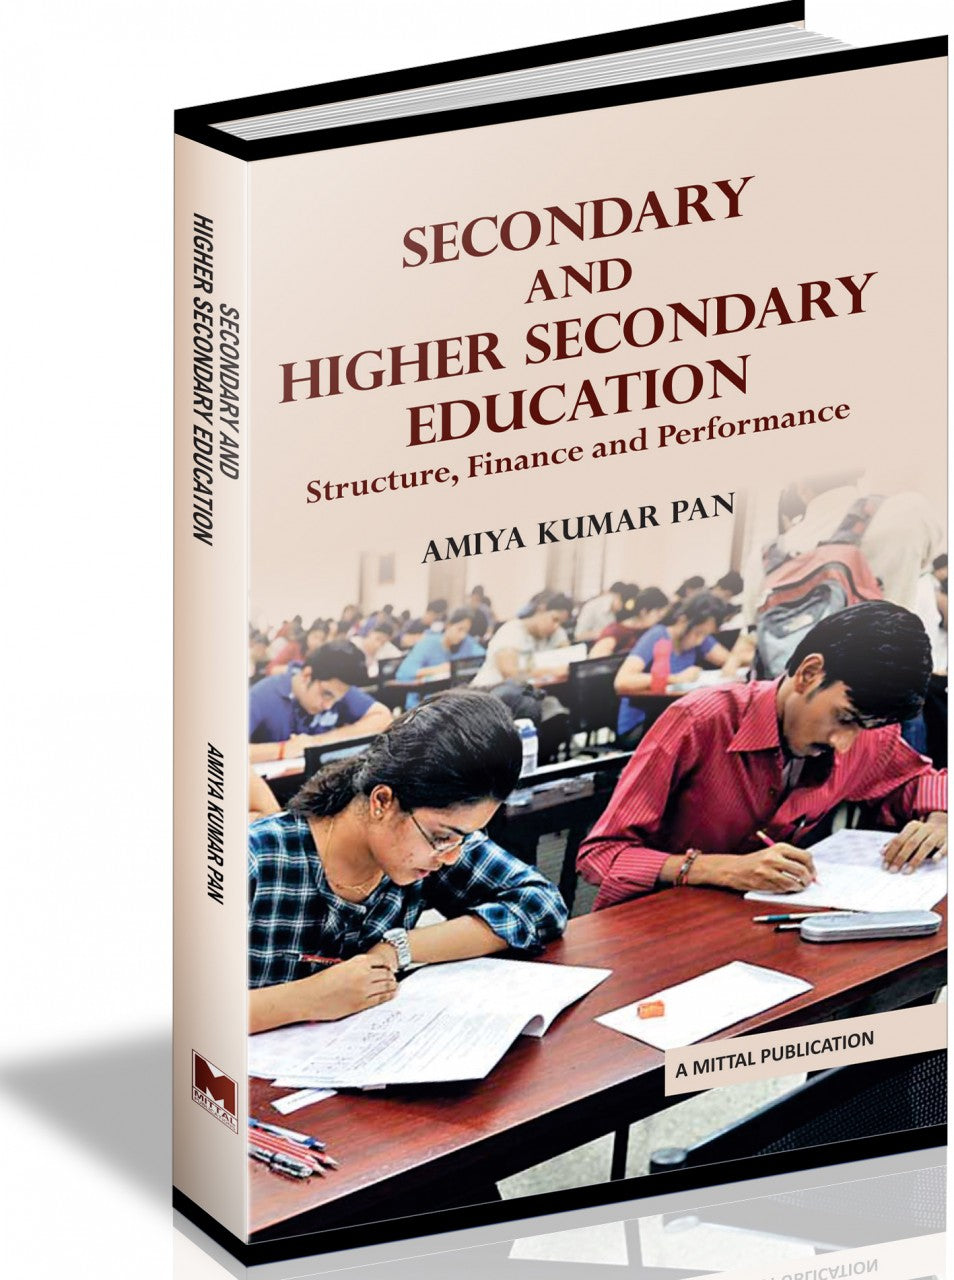 Secondary and Higher Secondary Education - Structure, Finance and Performance